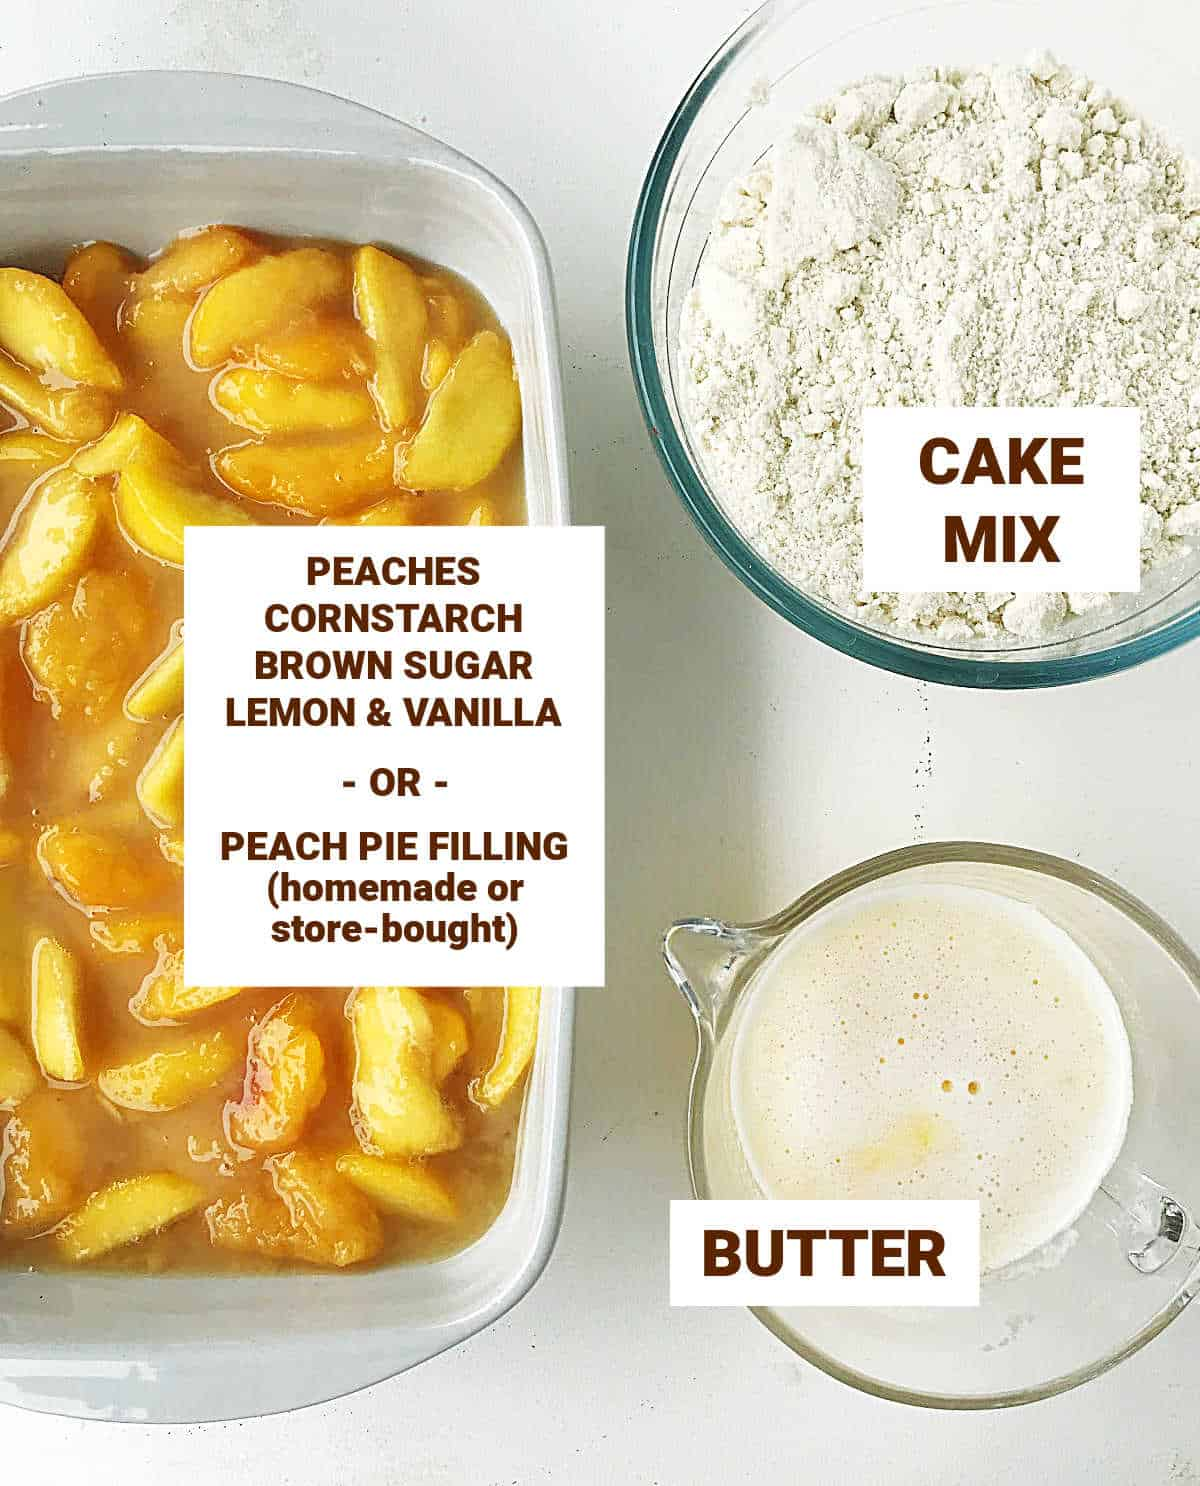 Ingredients for peach dump cake on white surface including melted butter, cake mix and peach filling